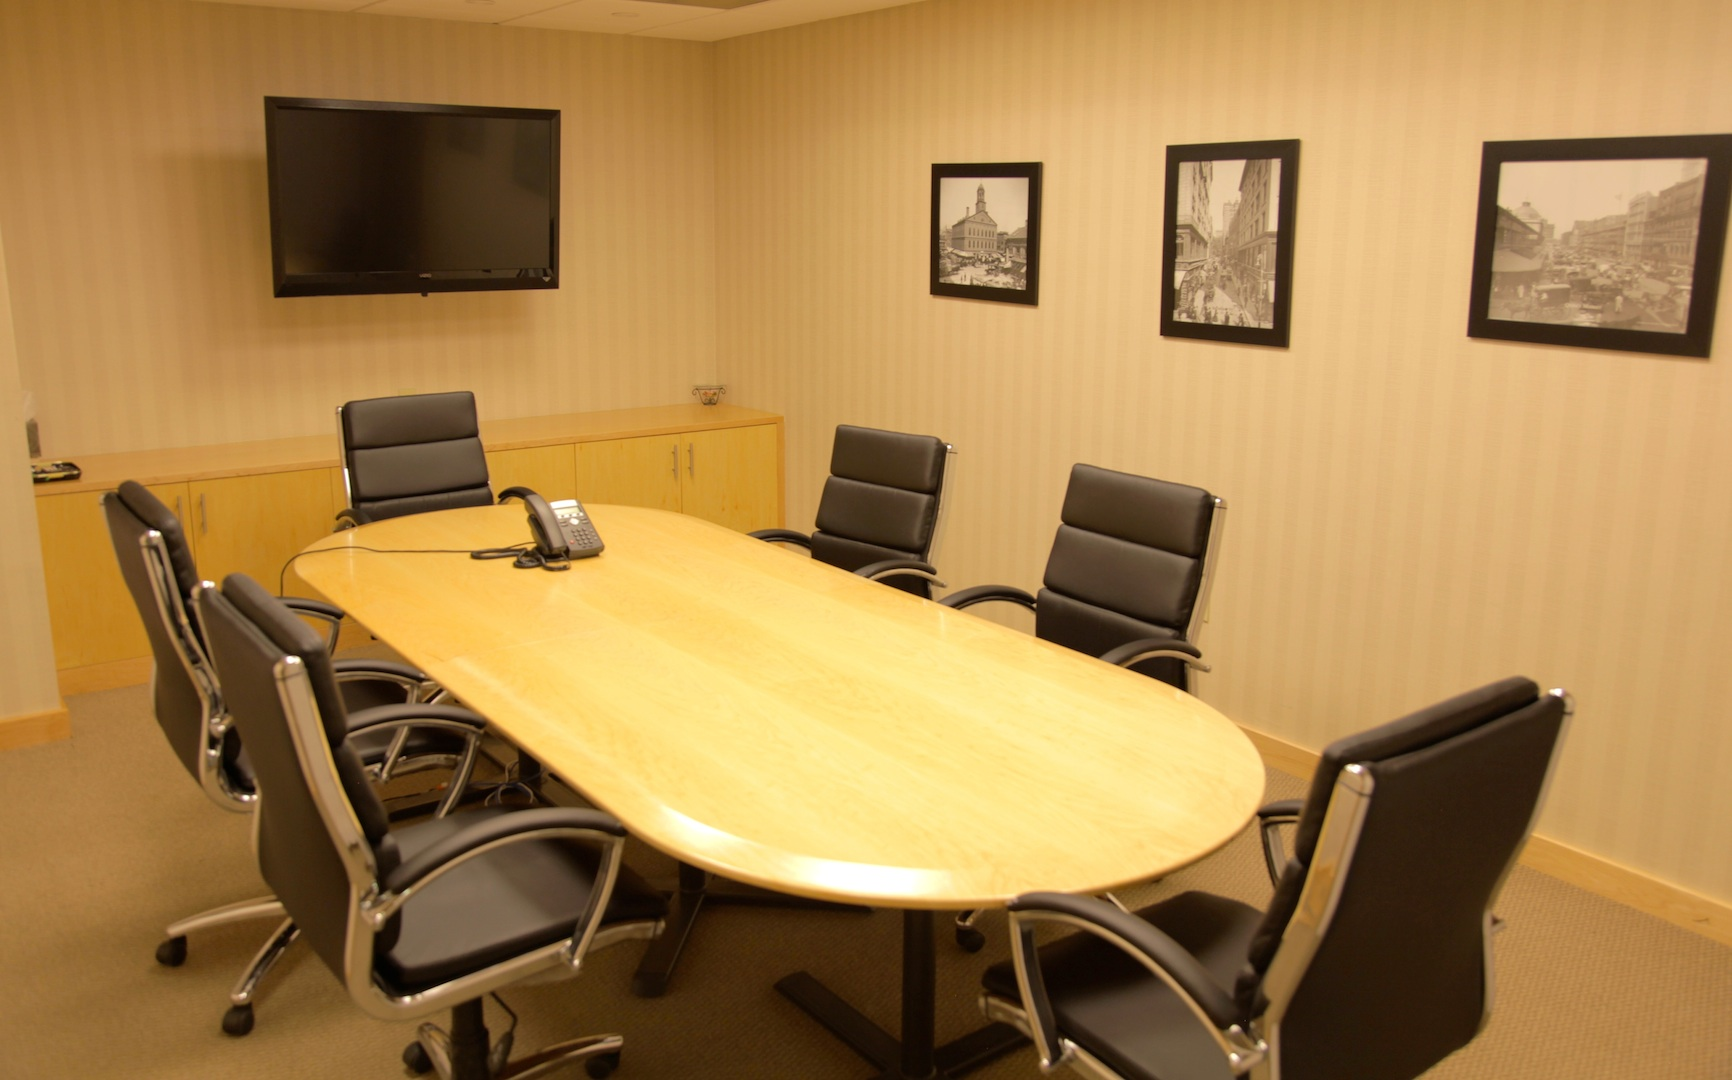 Small Conference Room copy.jpg